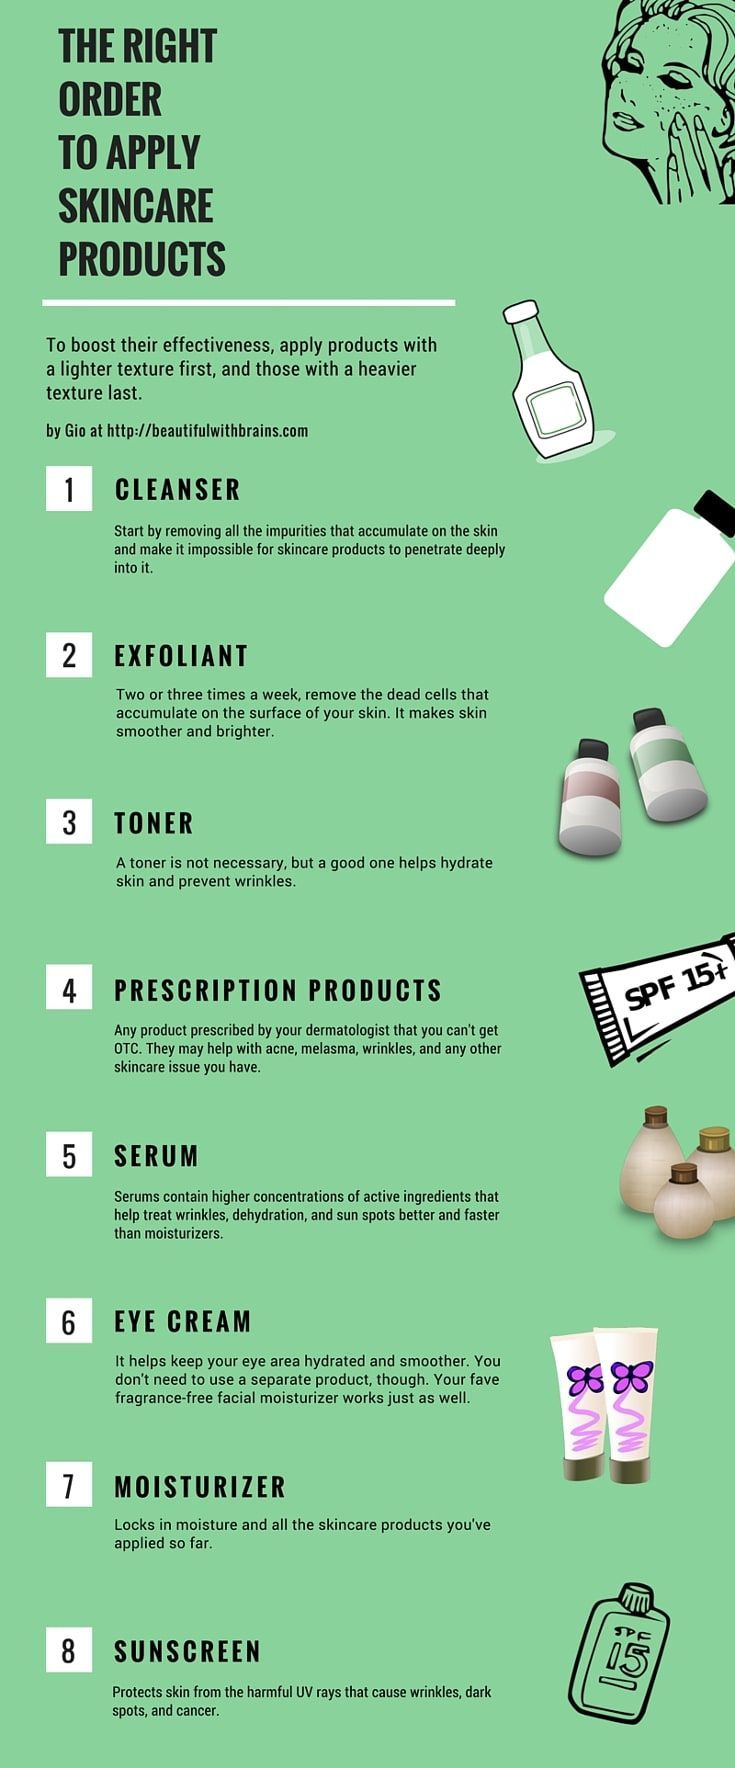 Are You Applying Your Skincare Products In The Right Order So They Work Their Best Via Giorgiabwb Skin Care Routine Order Skin Care Order Skin Care